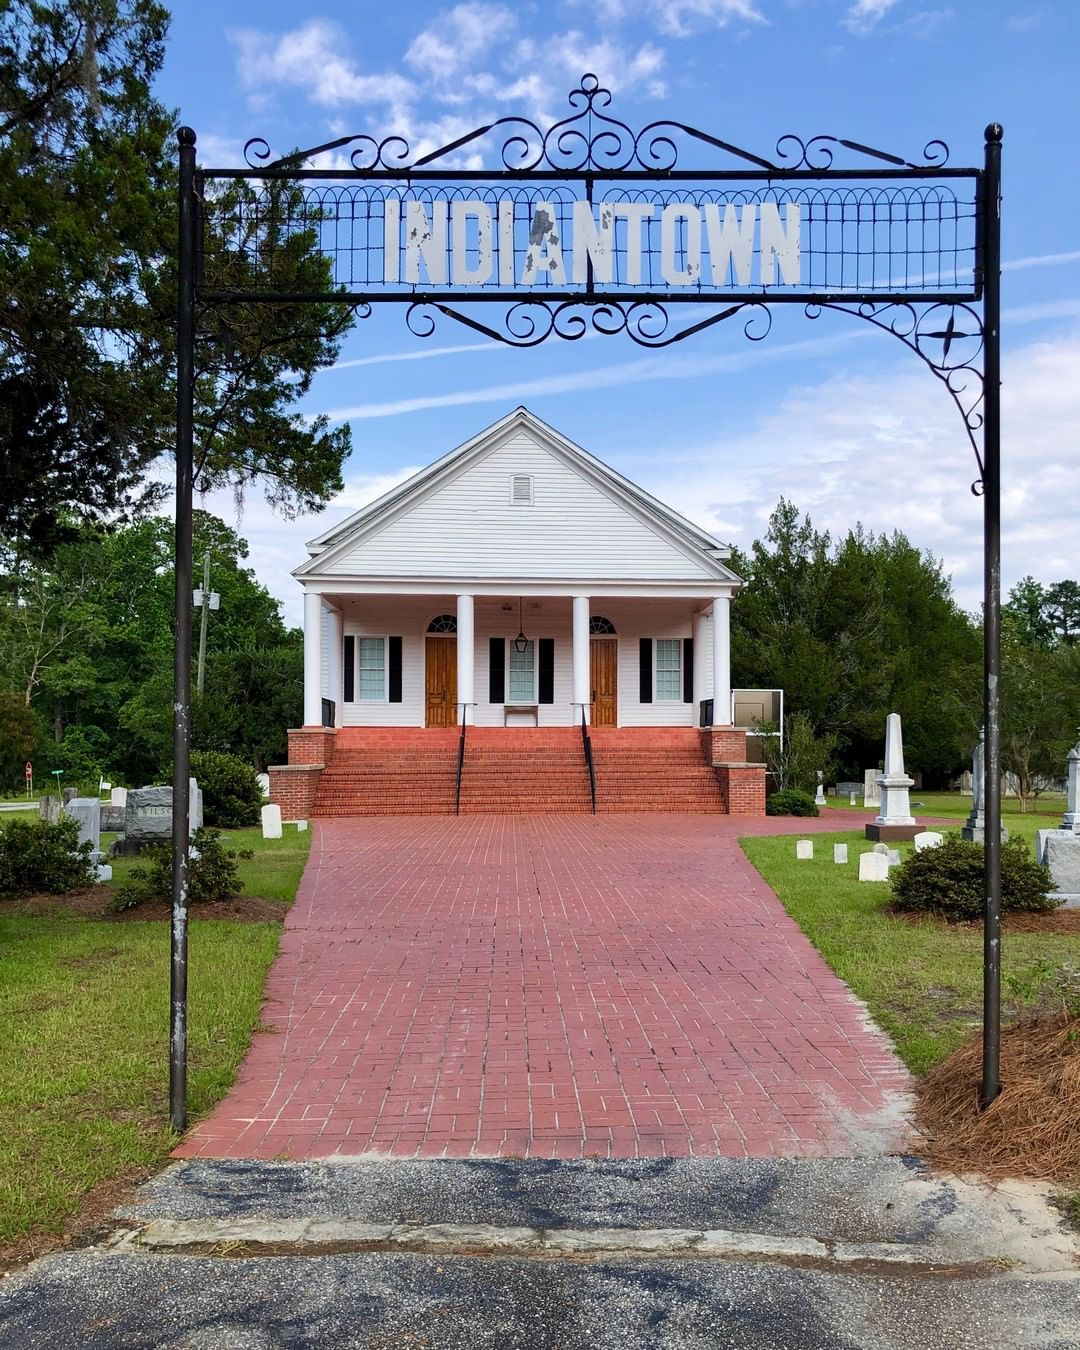 The Indiantown Presbyterian Church was established in 1757. That first church was burned in the Battle of King's Tree on August 27, 1780, Major Wemyss burned the church. This current church was built in 1830 and remodeled in 1919